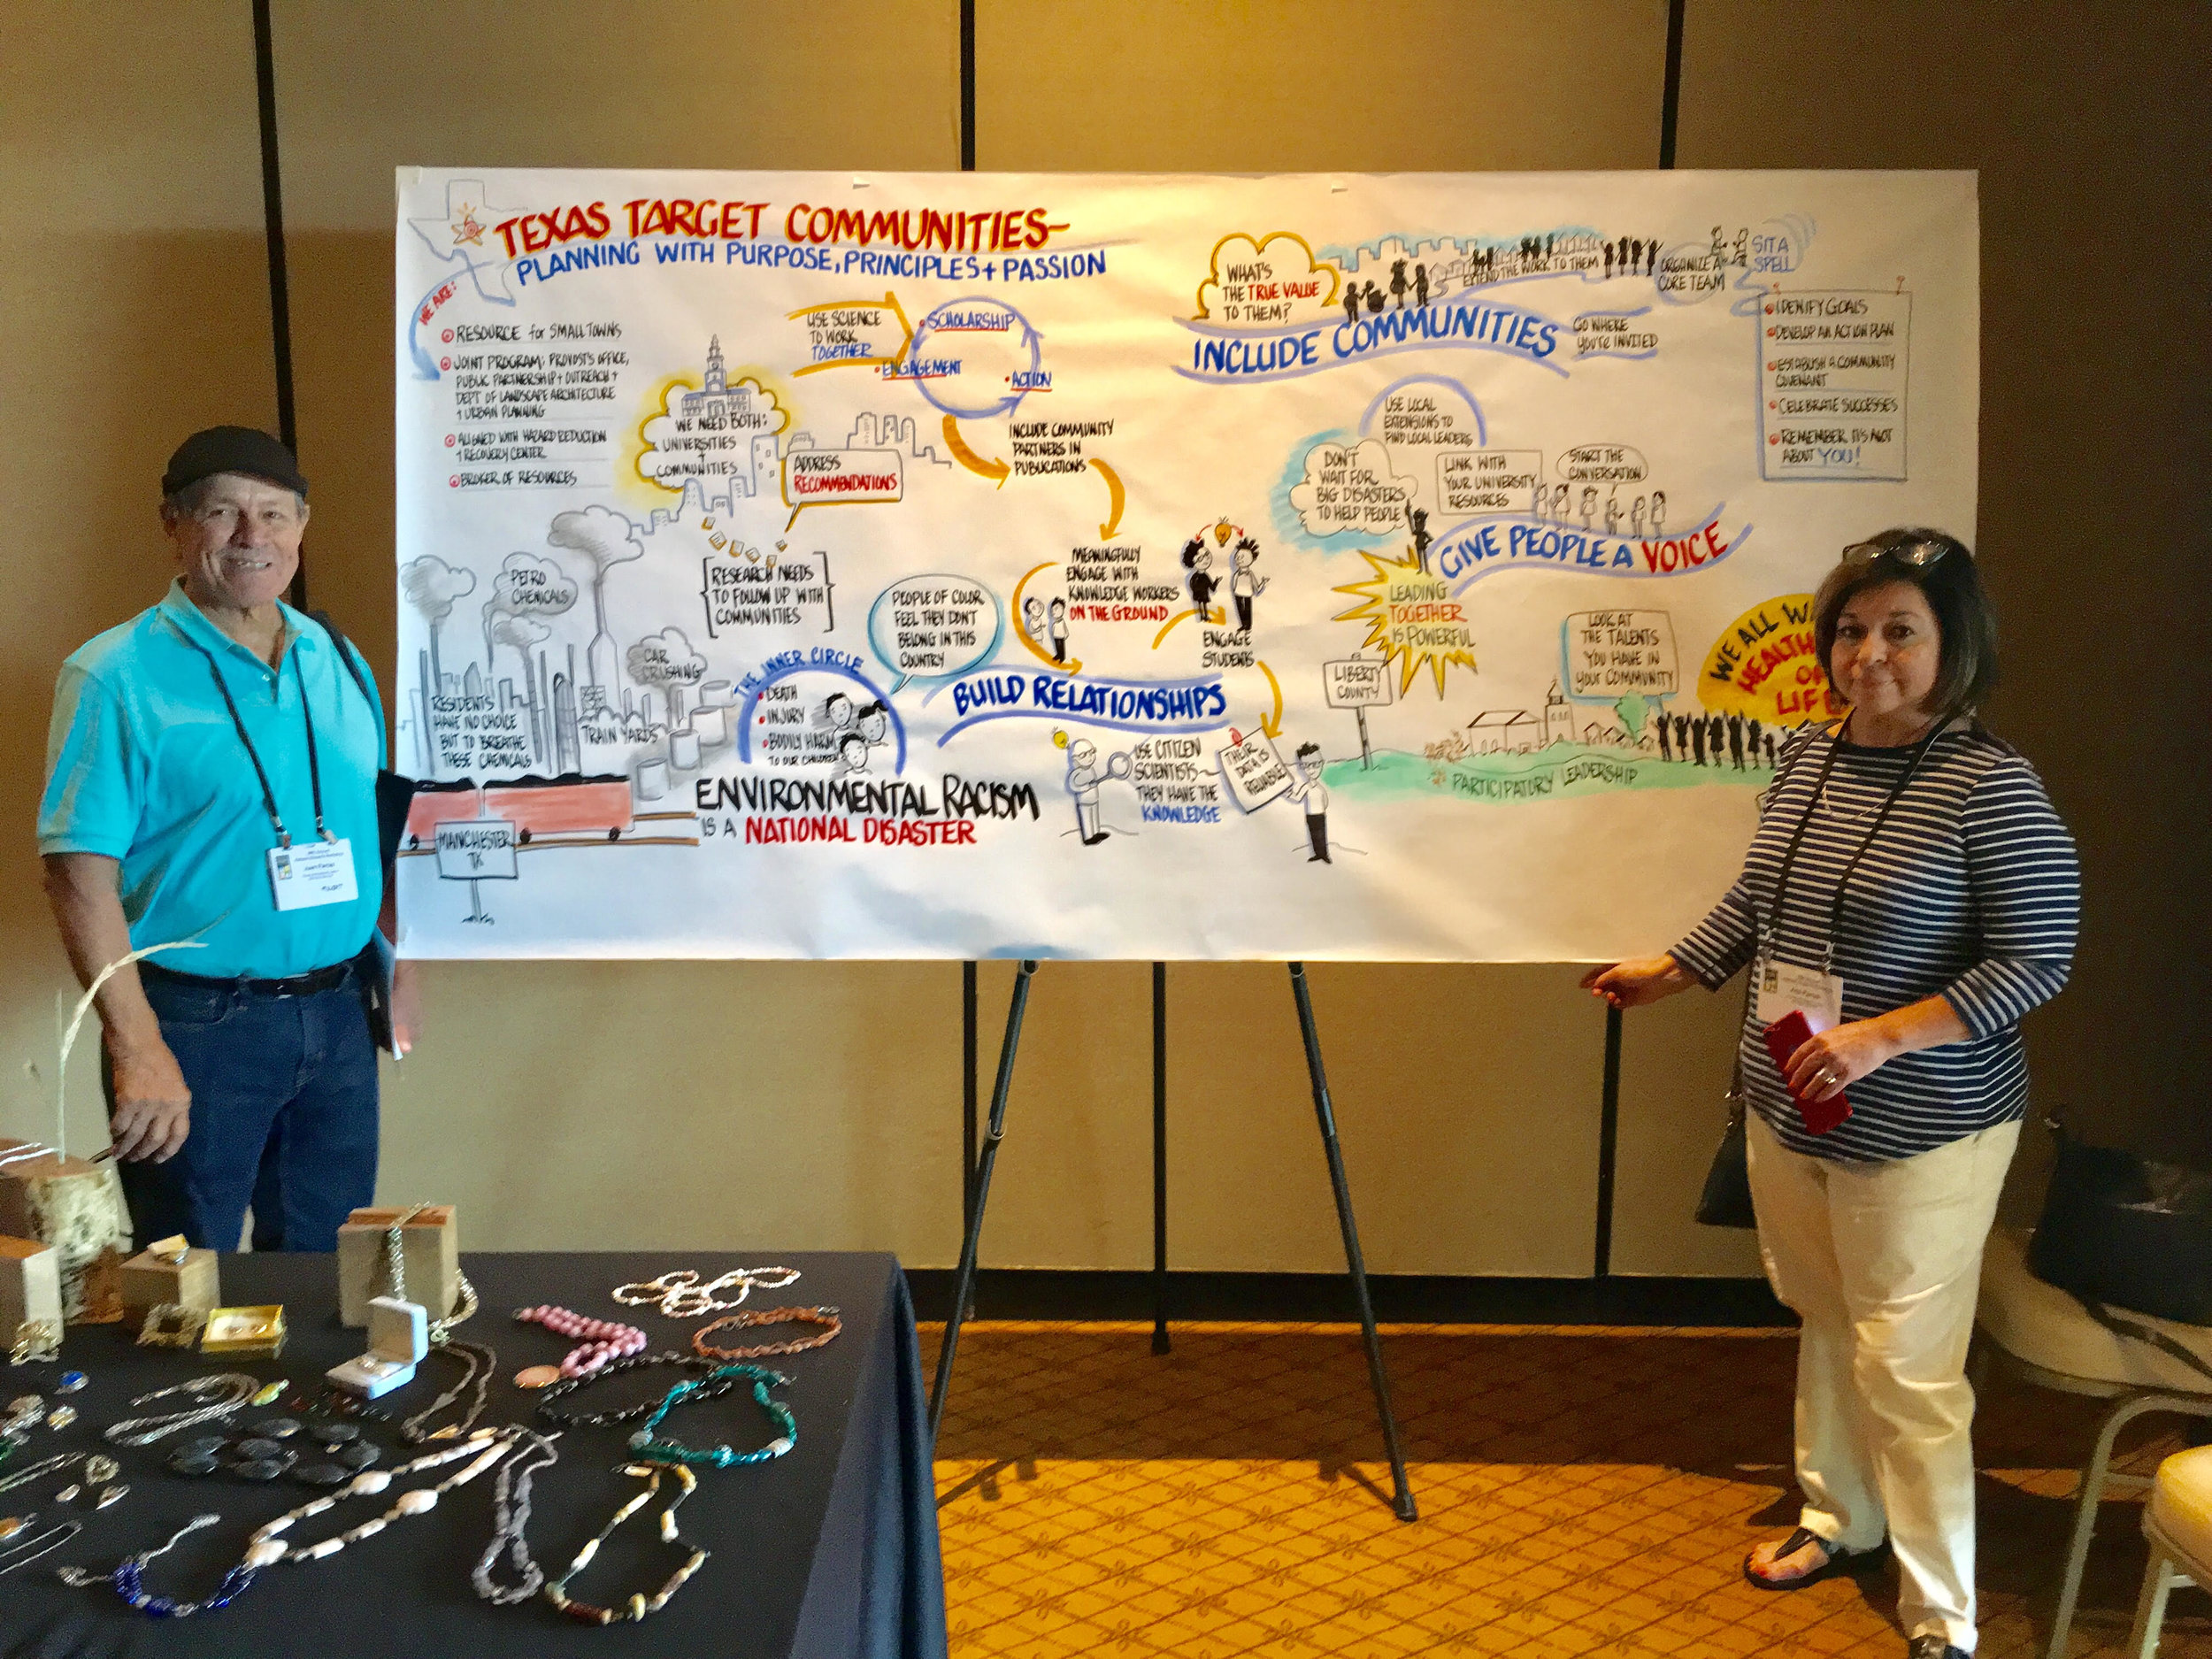 Juan Parras and his wife Ana and the wonderful live poster created as the team presented on the Texas Target Communities Project during a plenary.